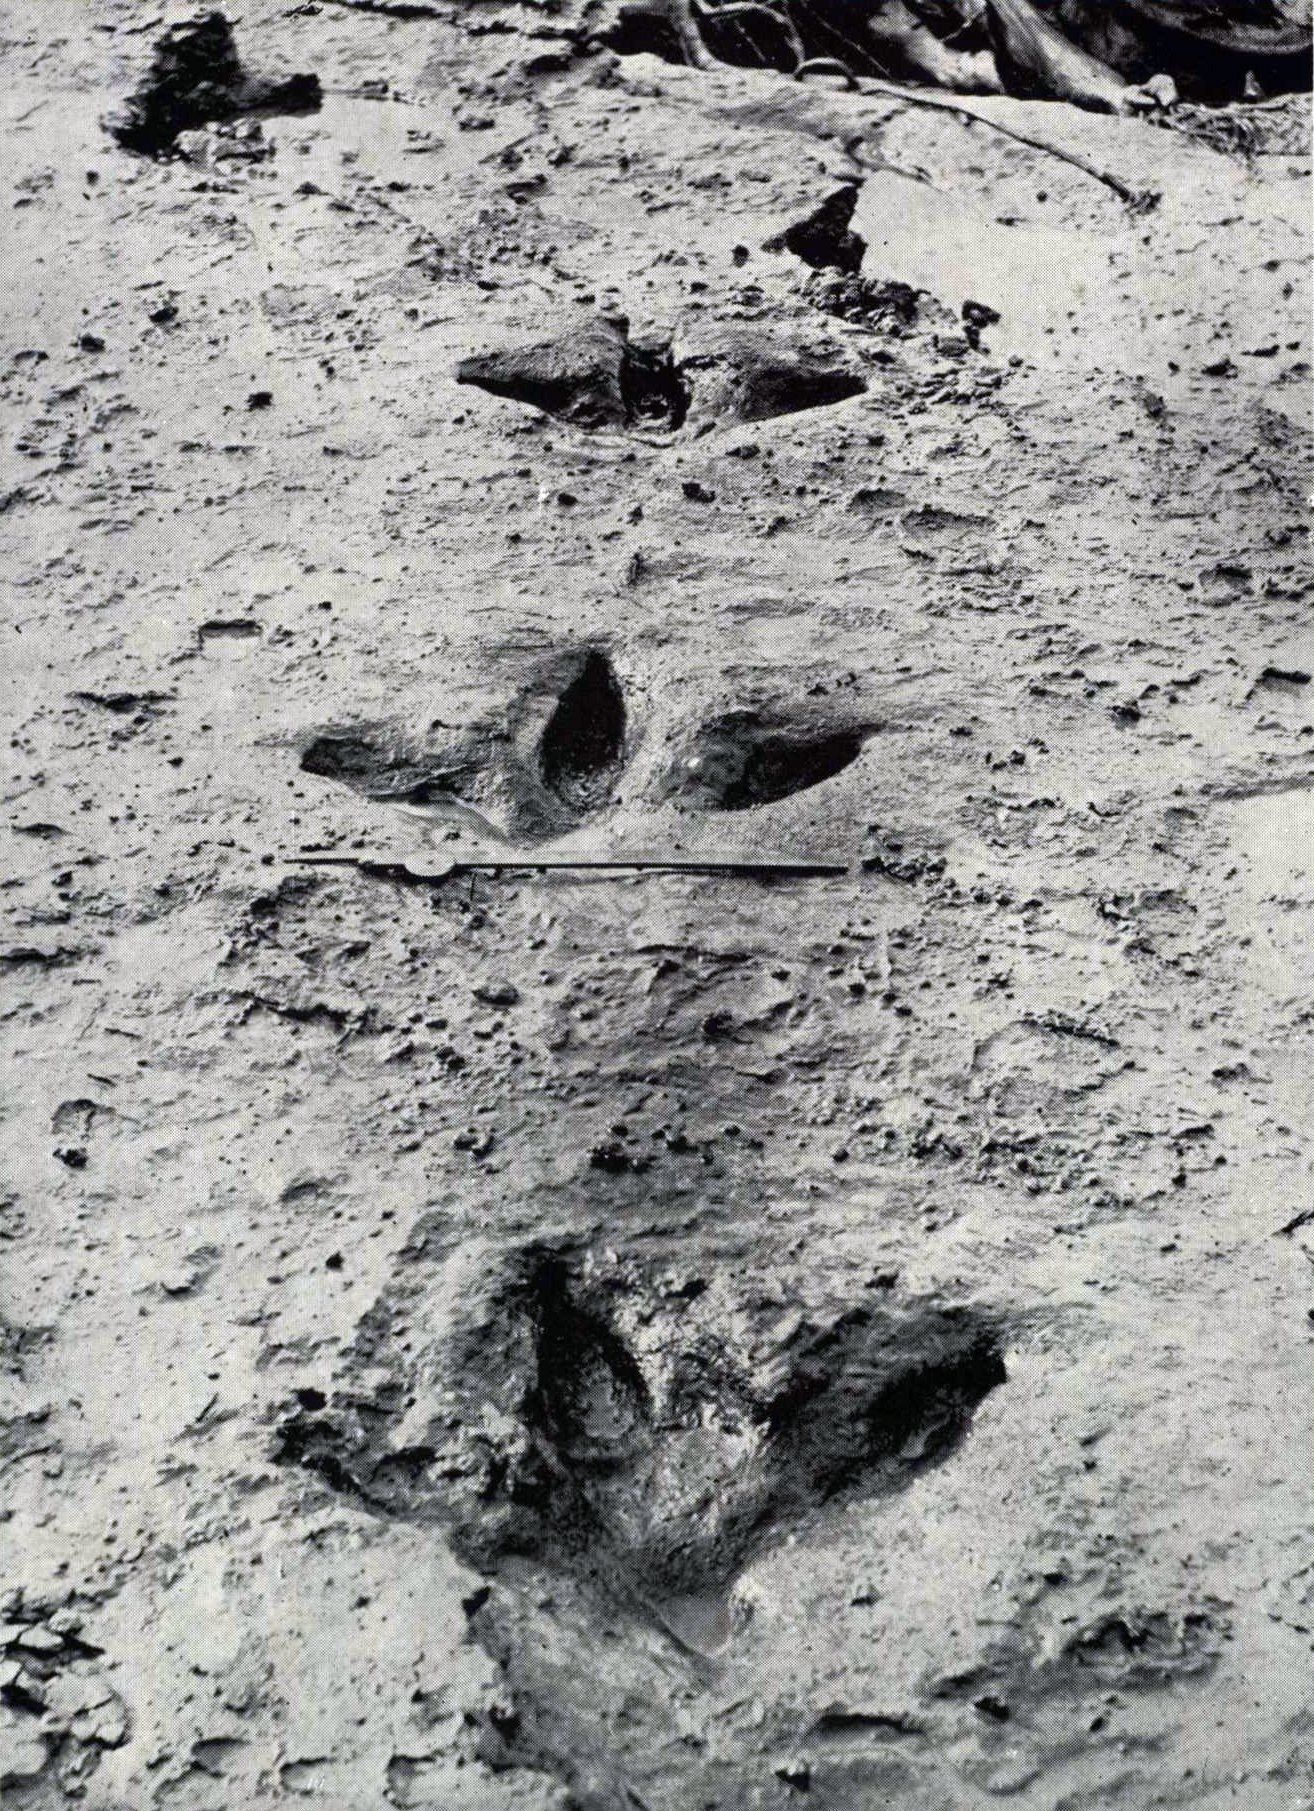 File:Moa footprints jpg - Wikimedia Commons